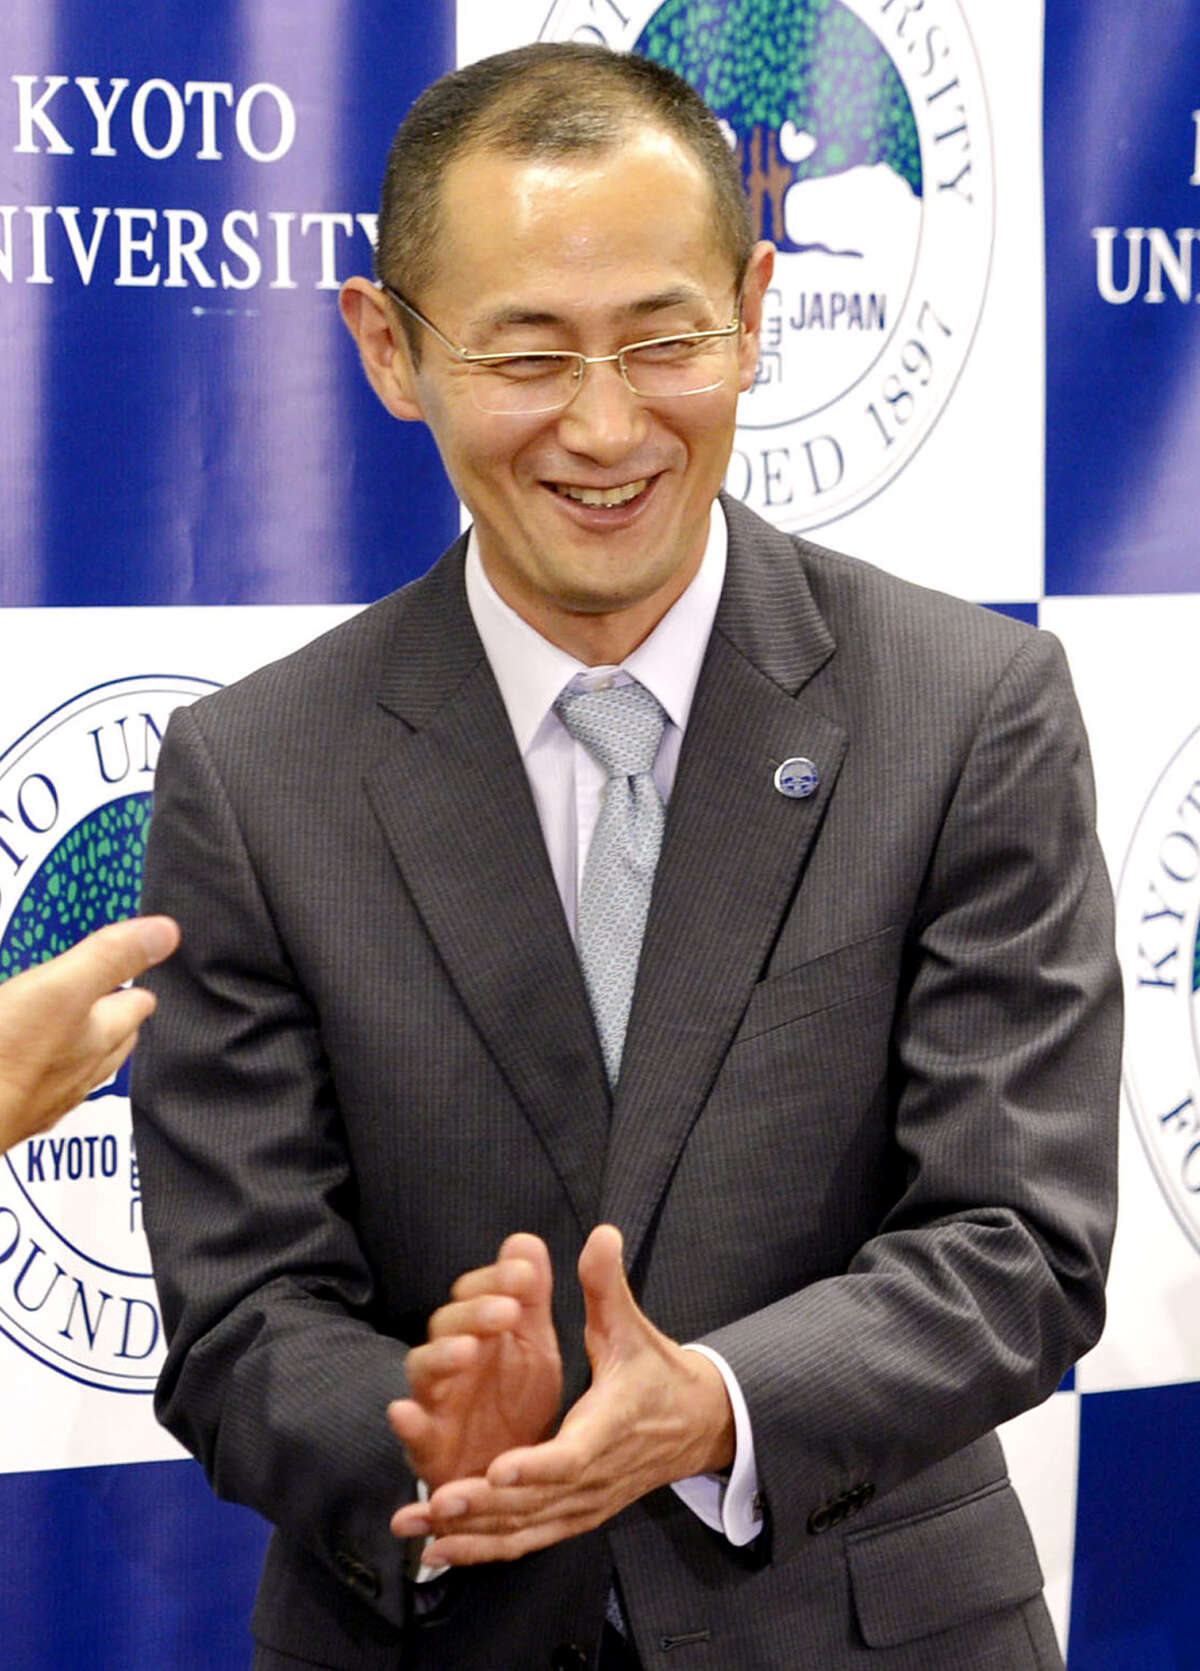 Kyoto University Professor Shinya Yamanaka reacts as journalists applaud the Nobel Prize winner at the end of his news conference at the university in Kyoto, Japan, Monday night, Oct. 8, 2012. Yamanaka and British researcher John Gurdon won this year's Nobel Prize in physiology or medicine. (AP Photo/Kyodo News) JAPAN OUT, MANDATORY CREDIT, NO LICENSING IN CHINA, FRANCE, HONG KONG, JAPAN AND SOUTH KOREA